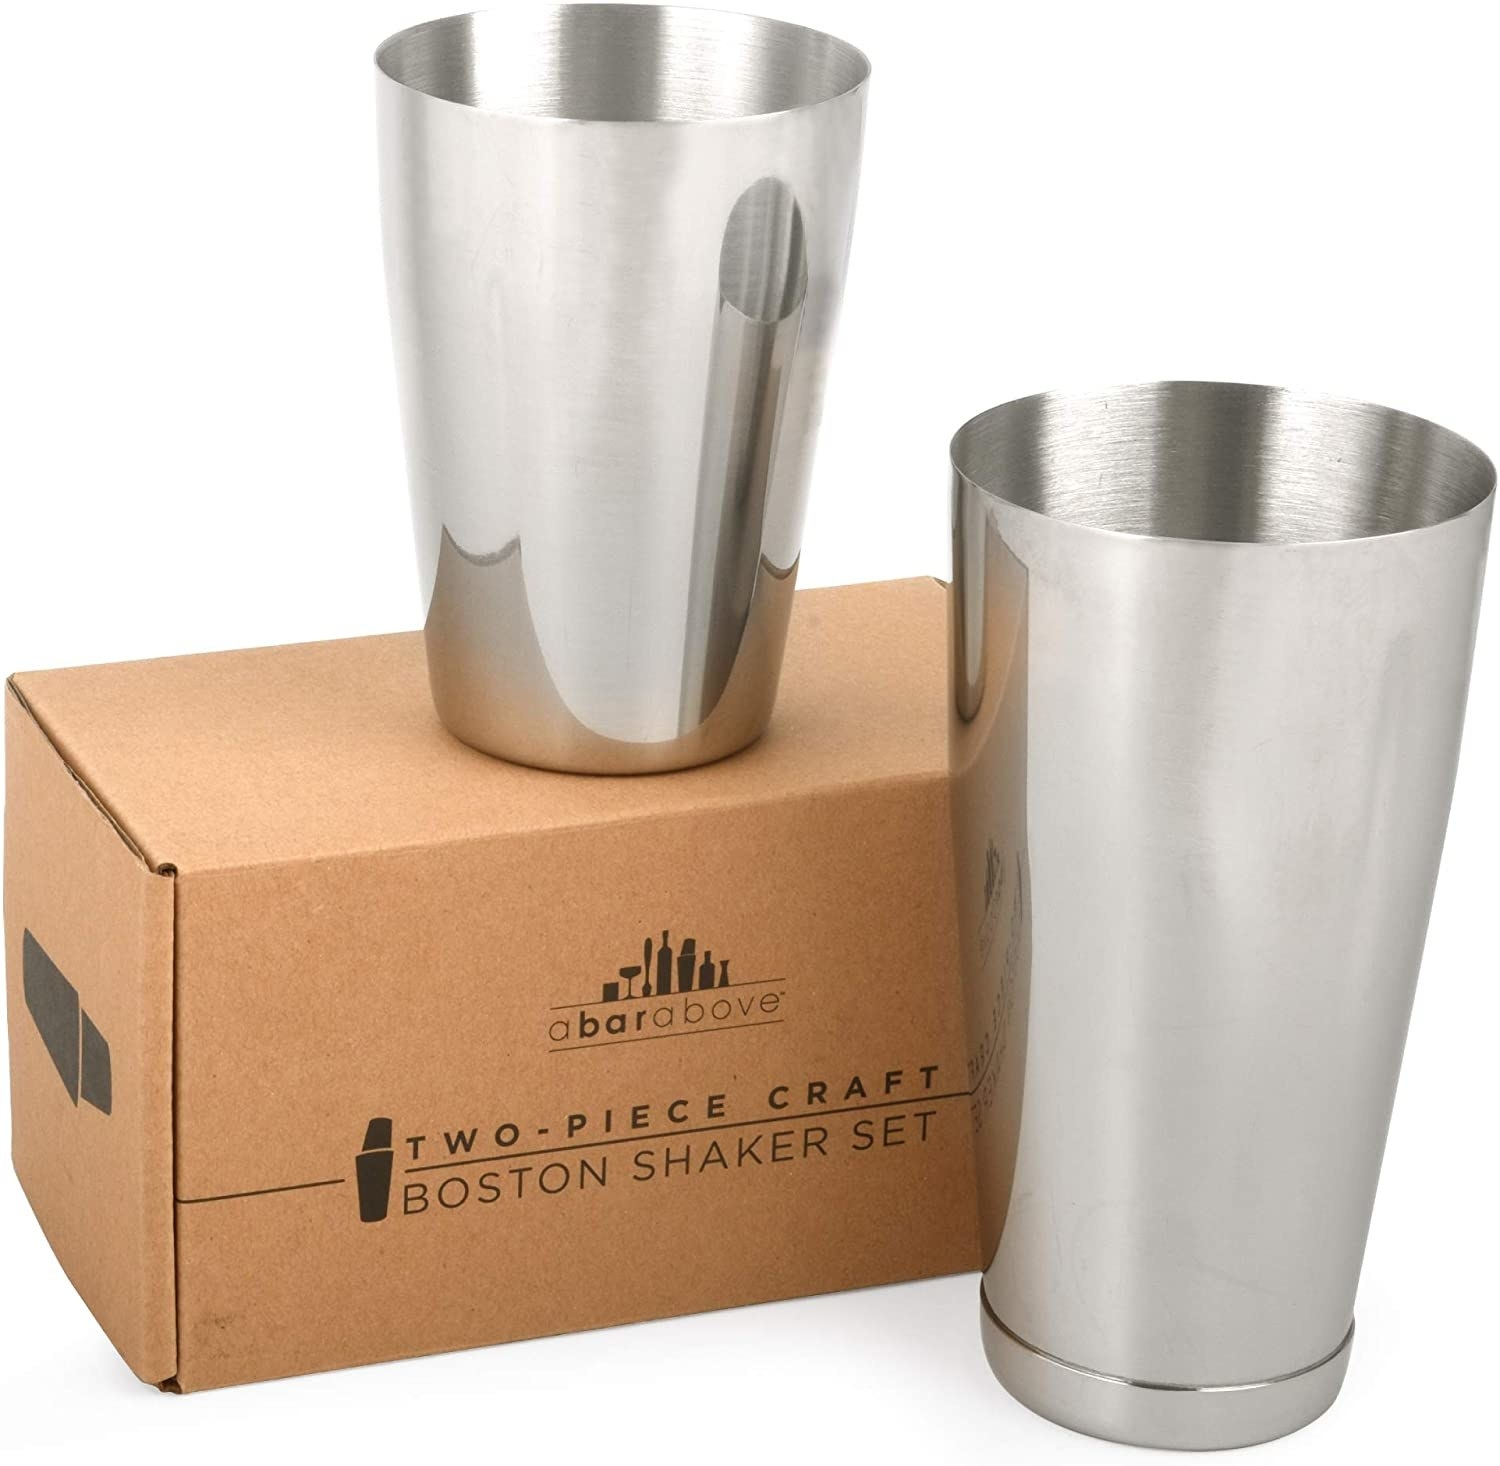 Two stainless steel drink shakers standing near and on top of the cardboard box they come in